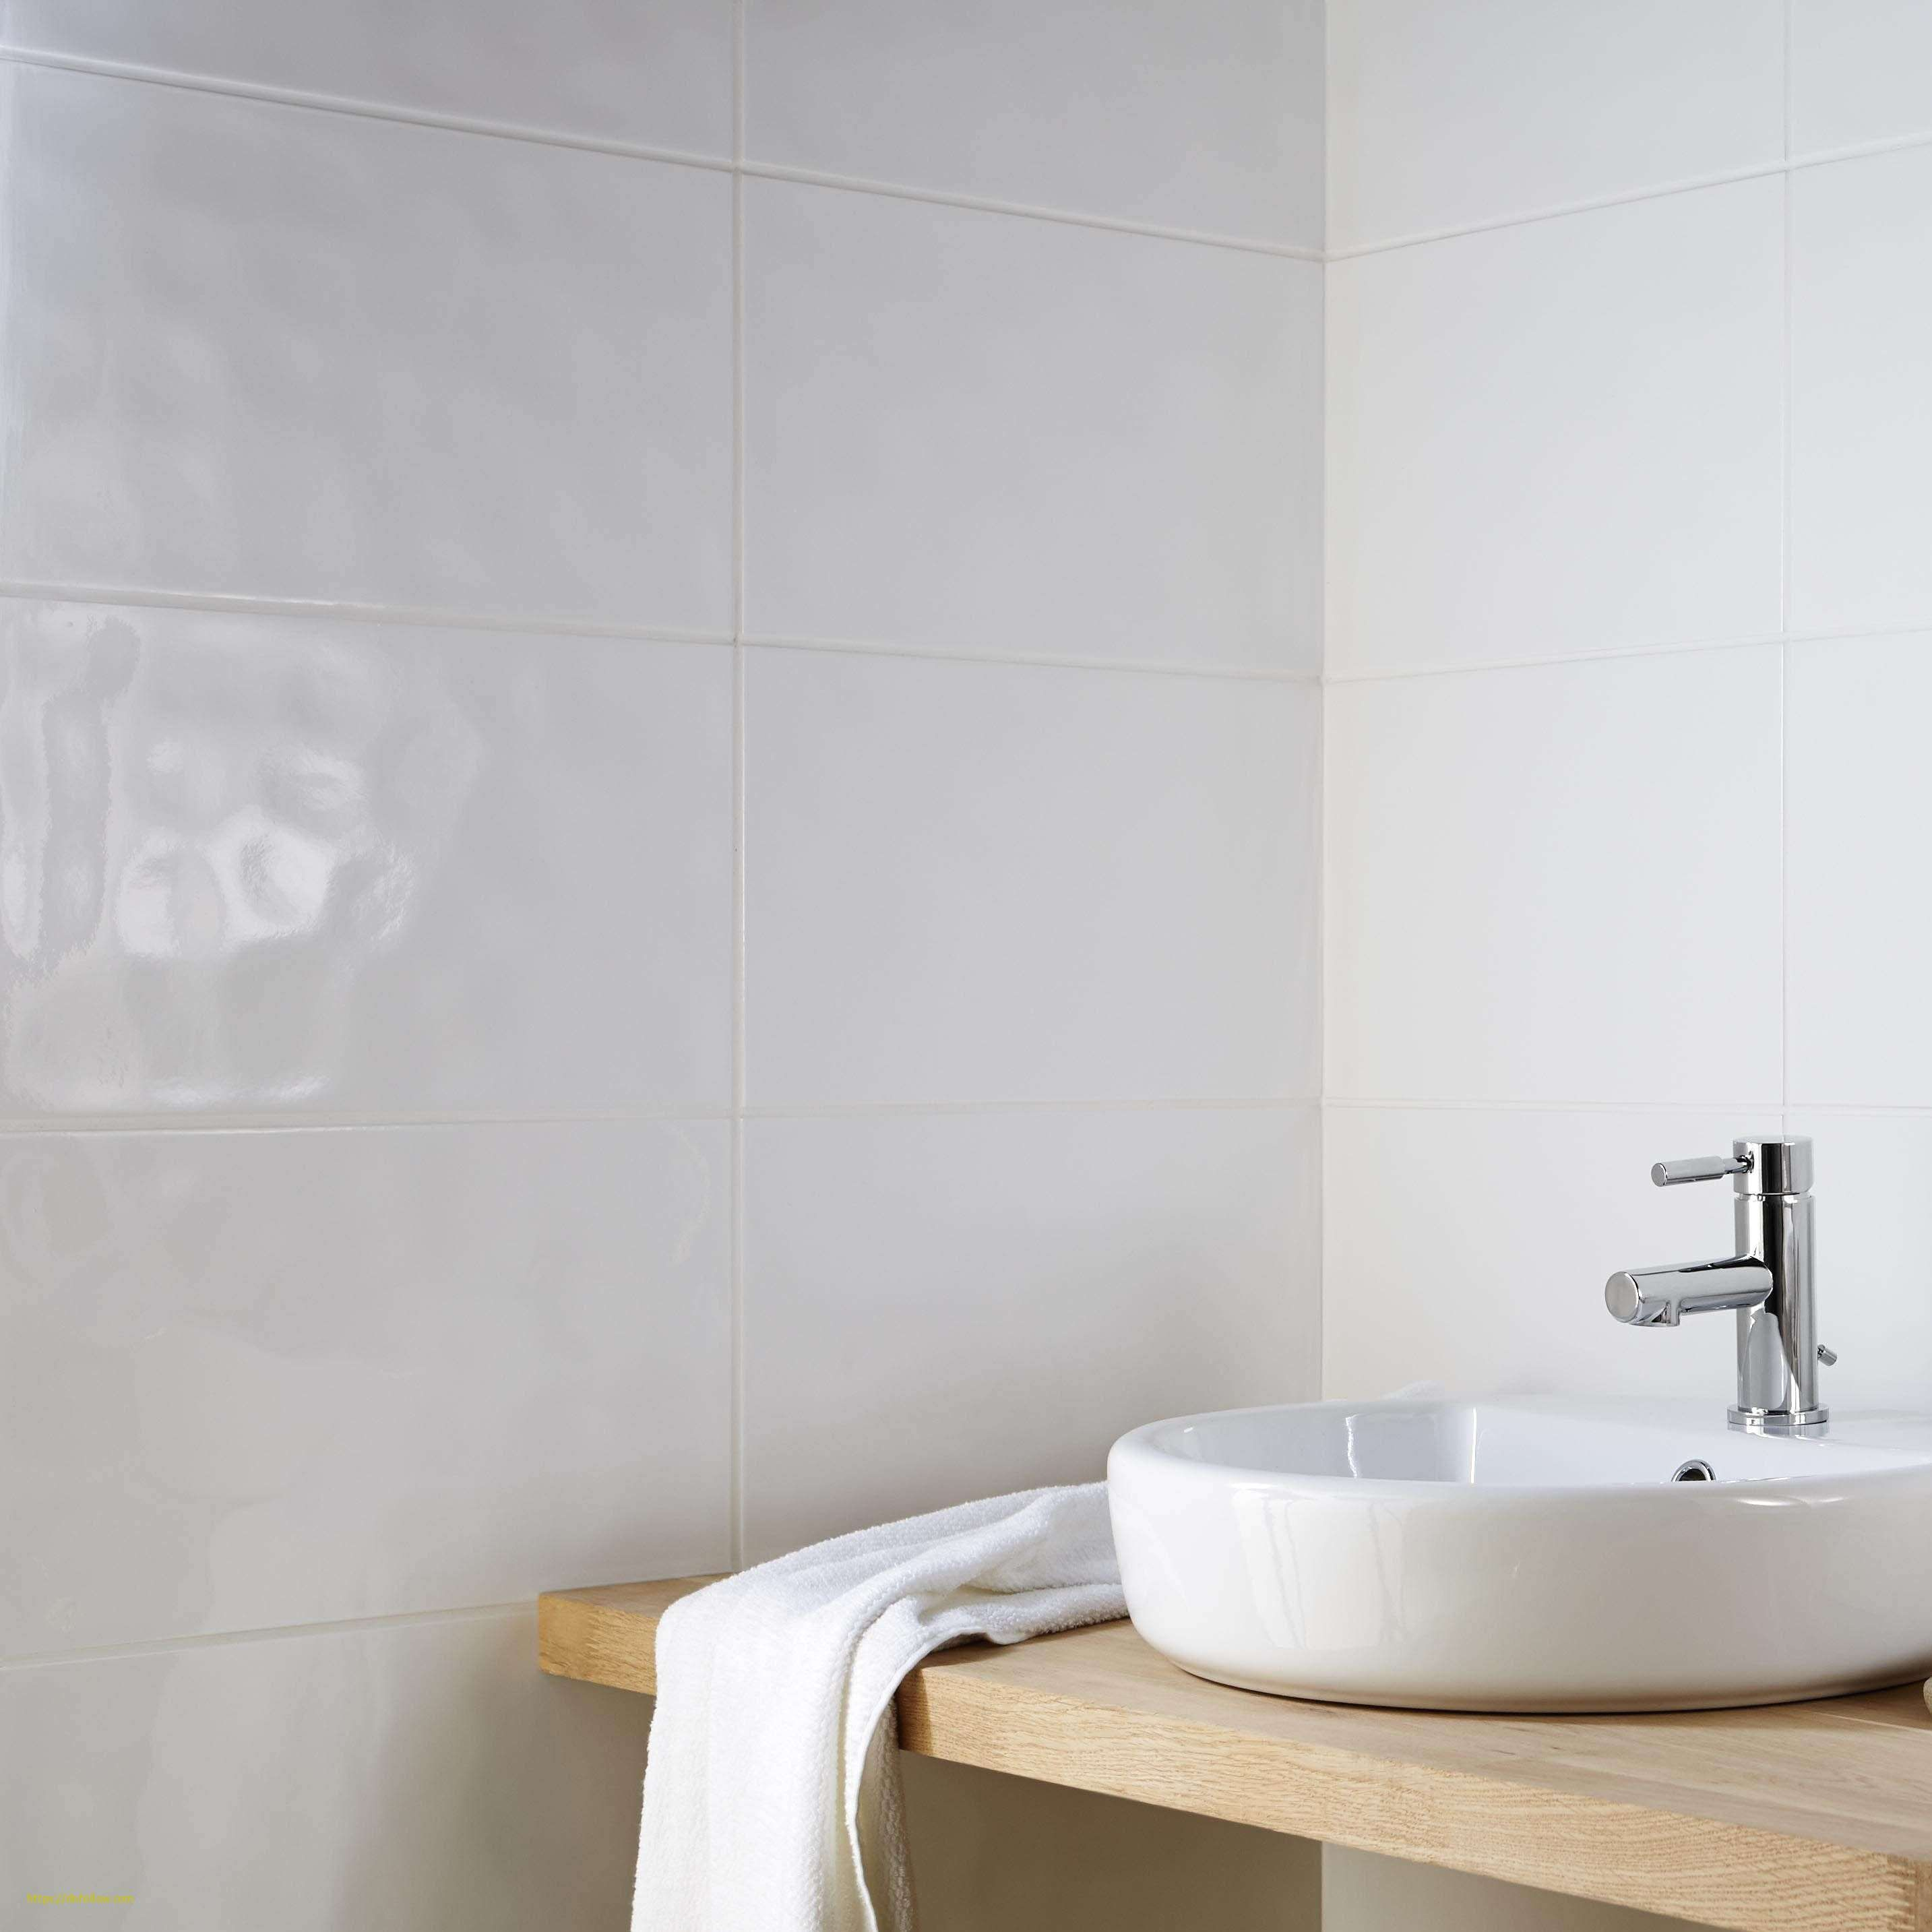 Best Of B and Q Bathroom Tile Designs Best Of B and Q Bathroom Tile ...